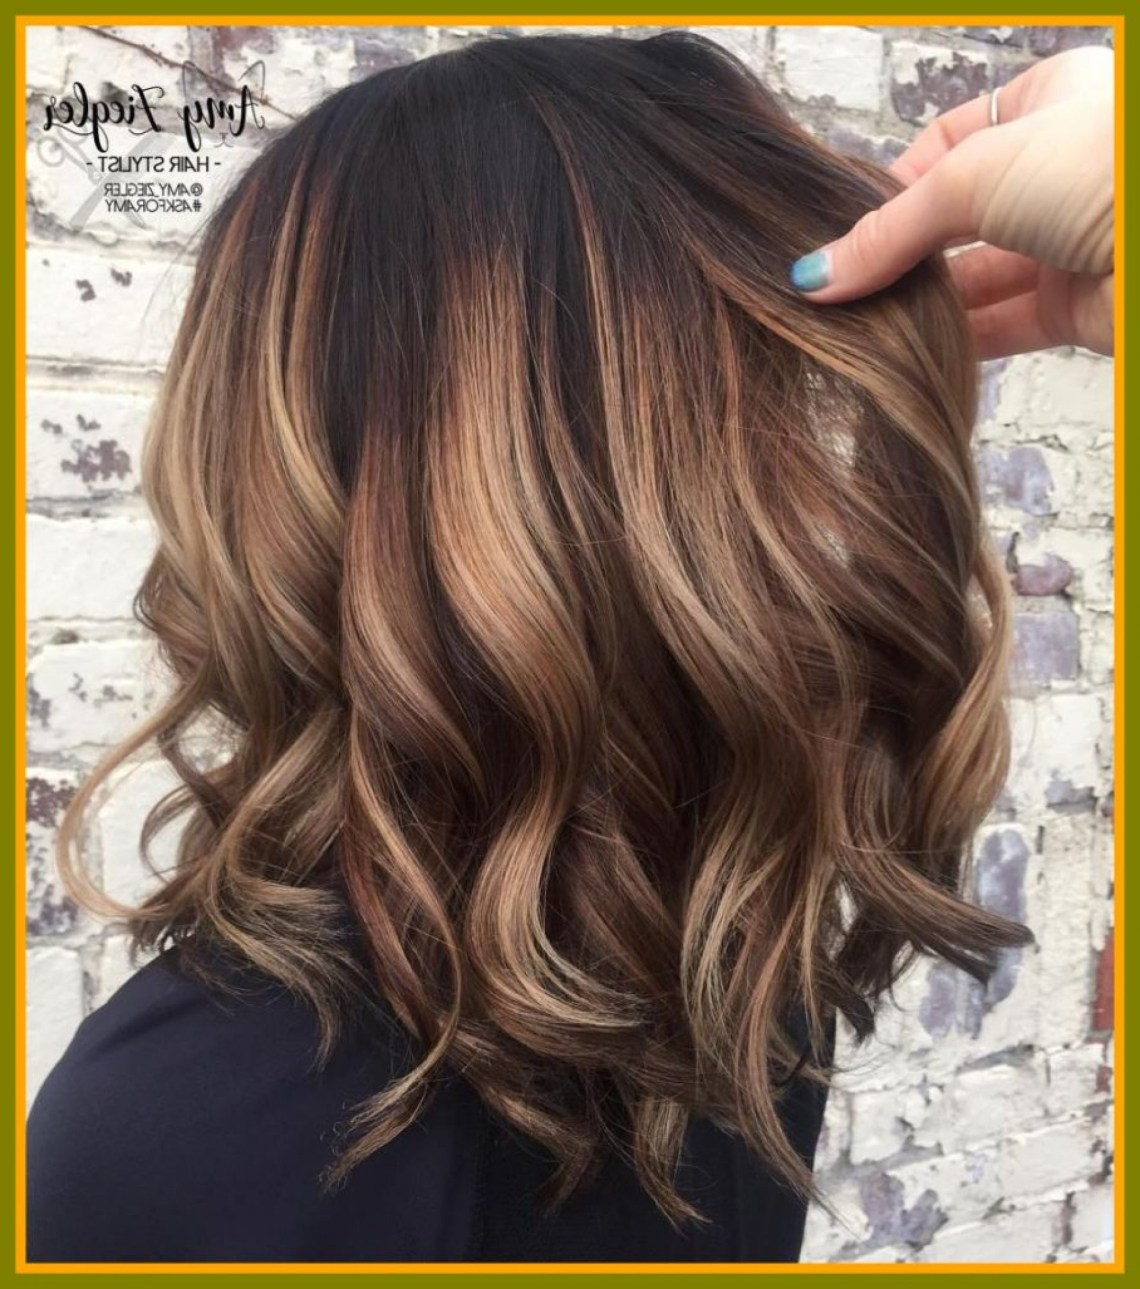 Medium Length Hairstyles With Highlights And Lowlights Medium Length Hairstyles With Highlights And Lowlights